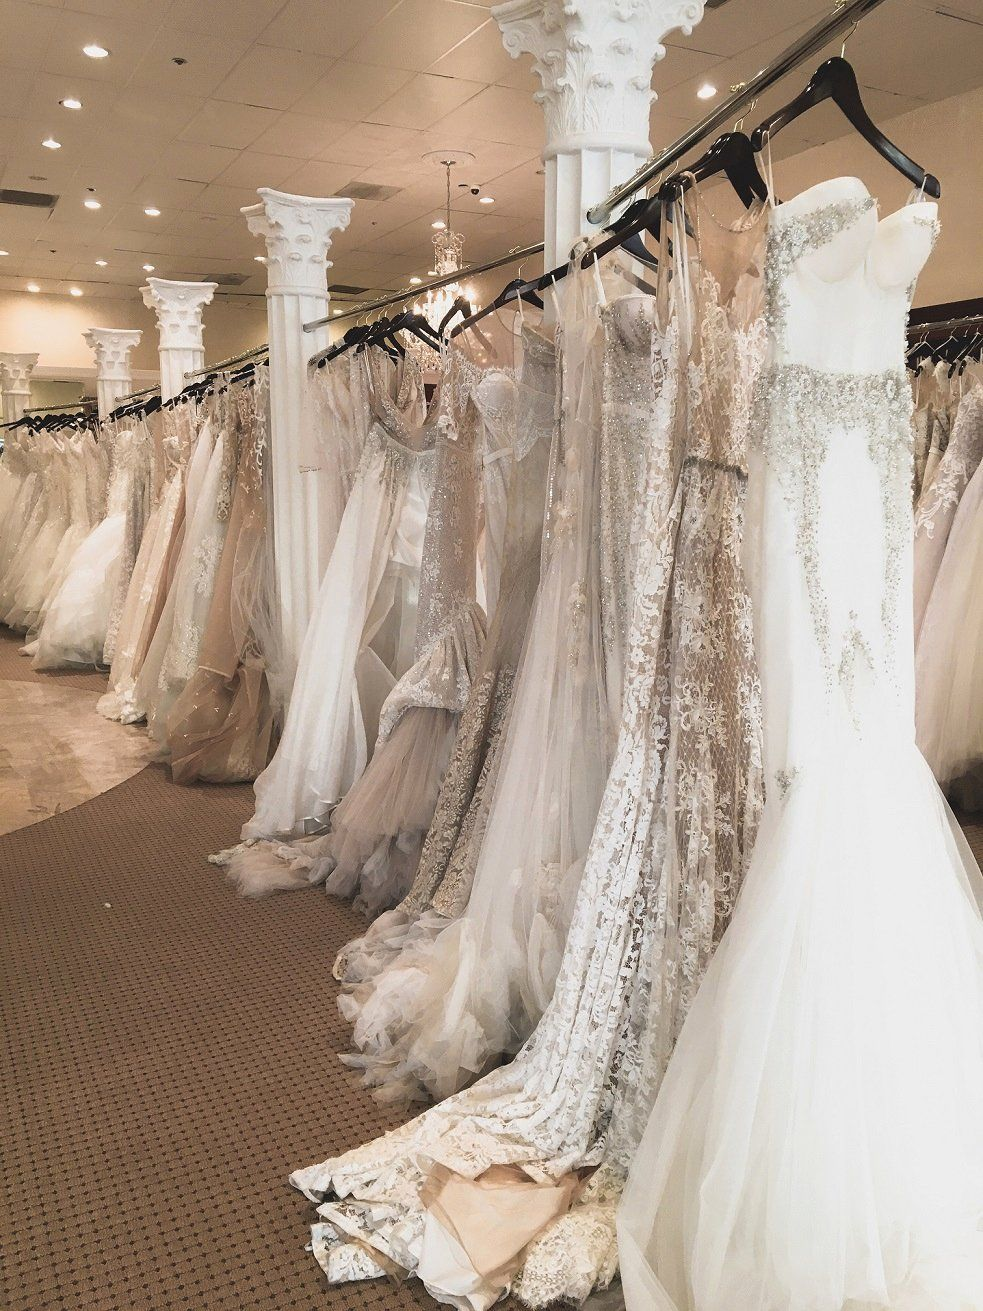 Congrats You Did It Inspirational According To Kimberly An Orange County Life Style Blog 5 In 2020 Bridal Dress Shops Ivory Wedding Dress Wedding Dresses